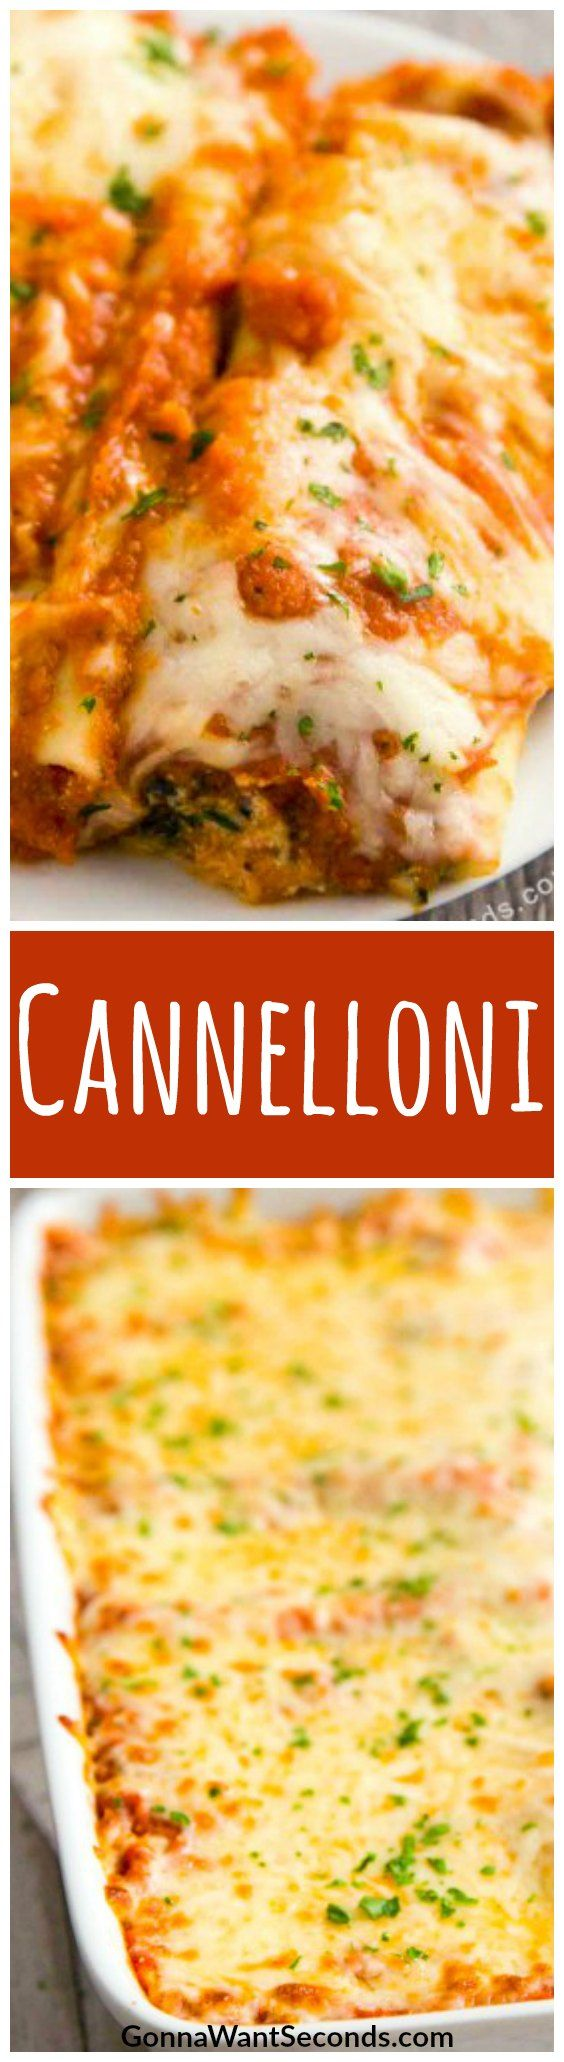 Think you can't pull together a successful stuffed pasta dinner without hours in the kitchen? You can Cannelloni! One simple shortcut makes this is an attainable, impressive Italian feast that will have your guests toasting the chef!